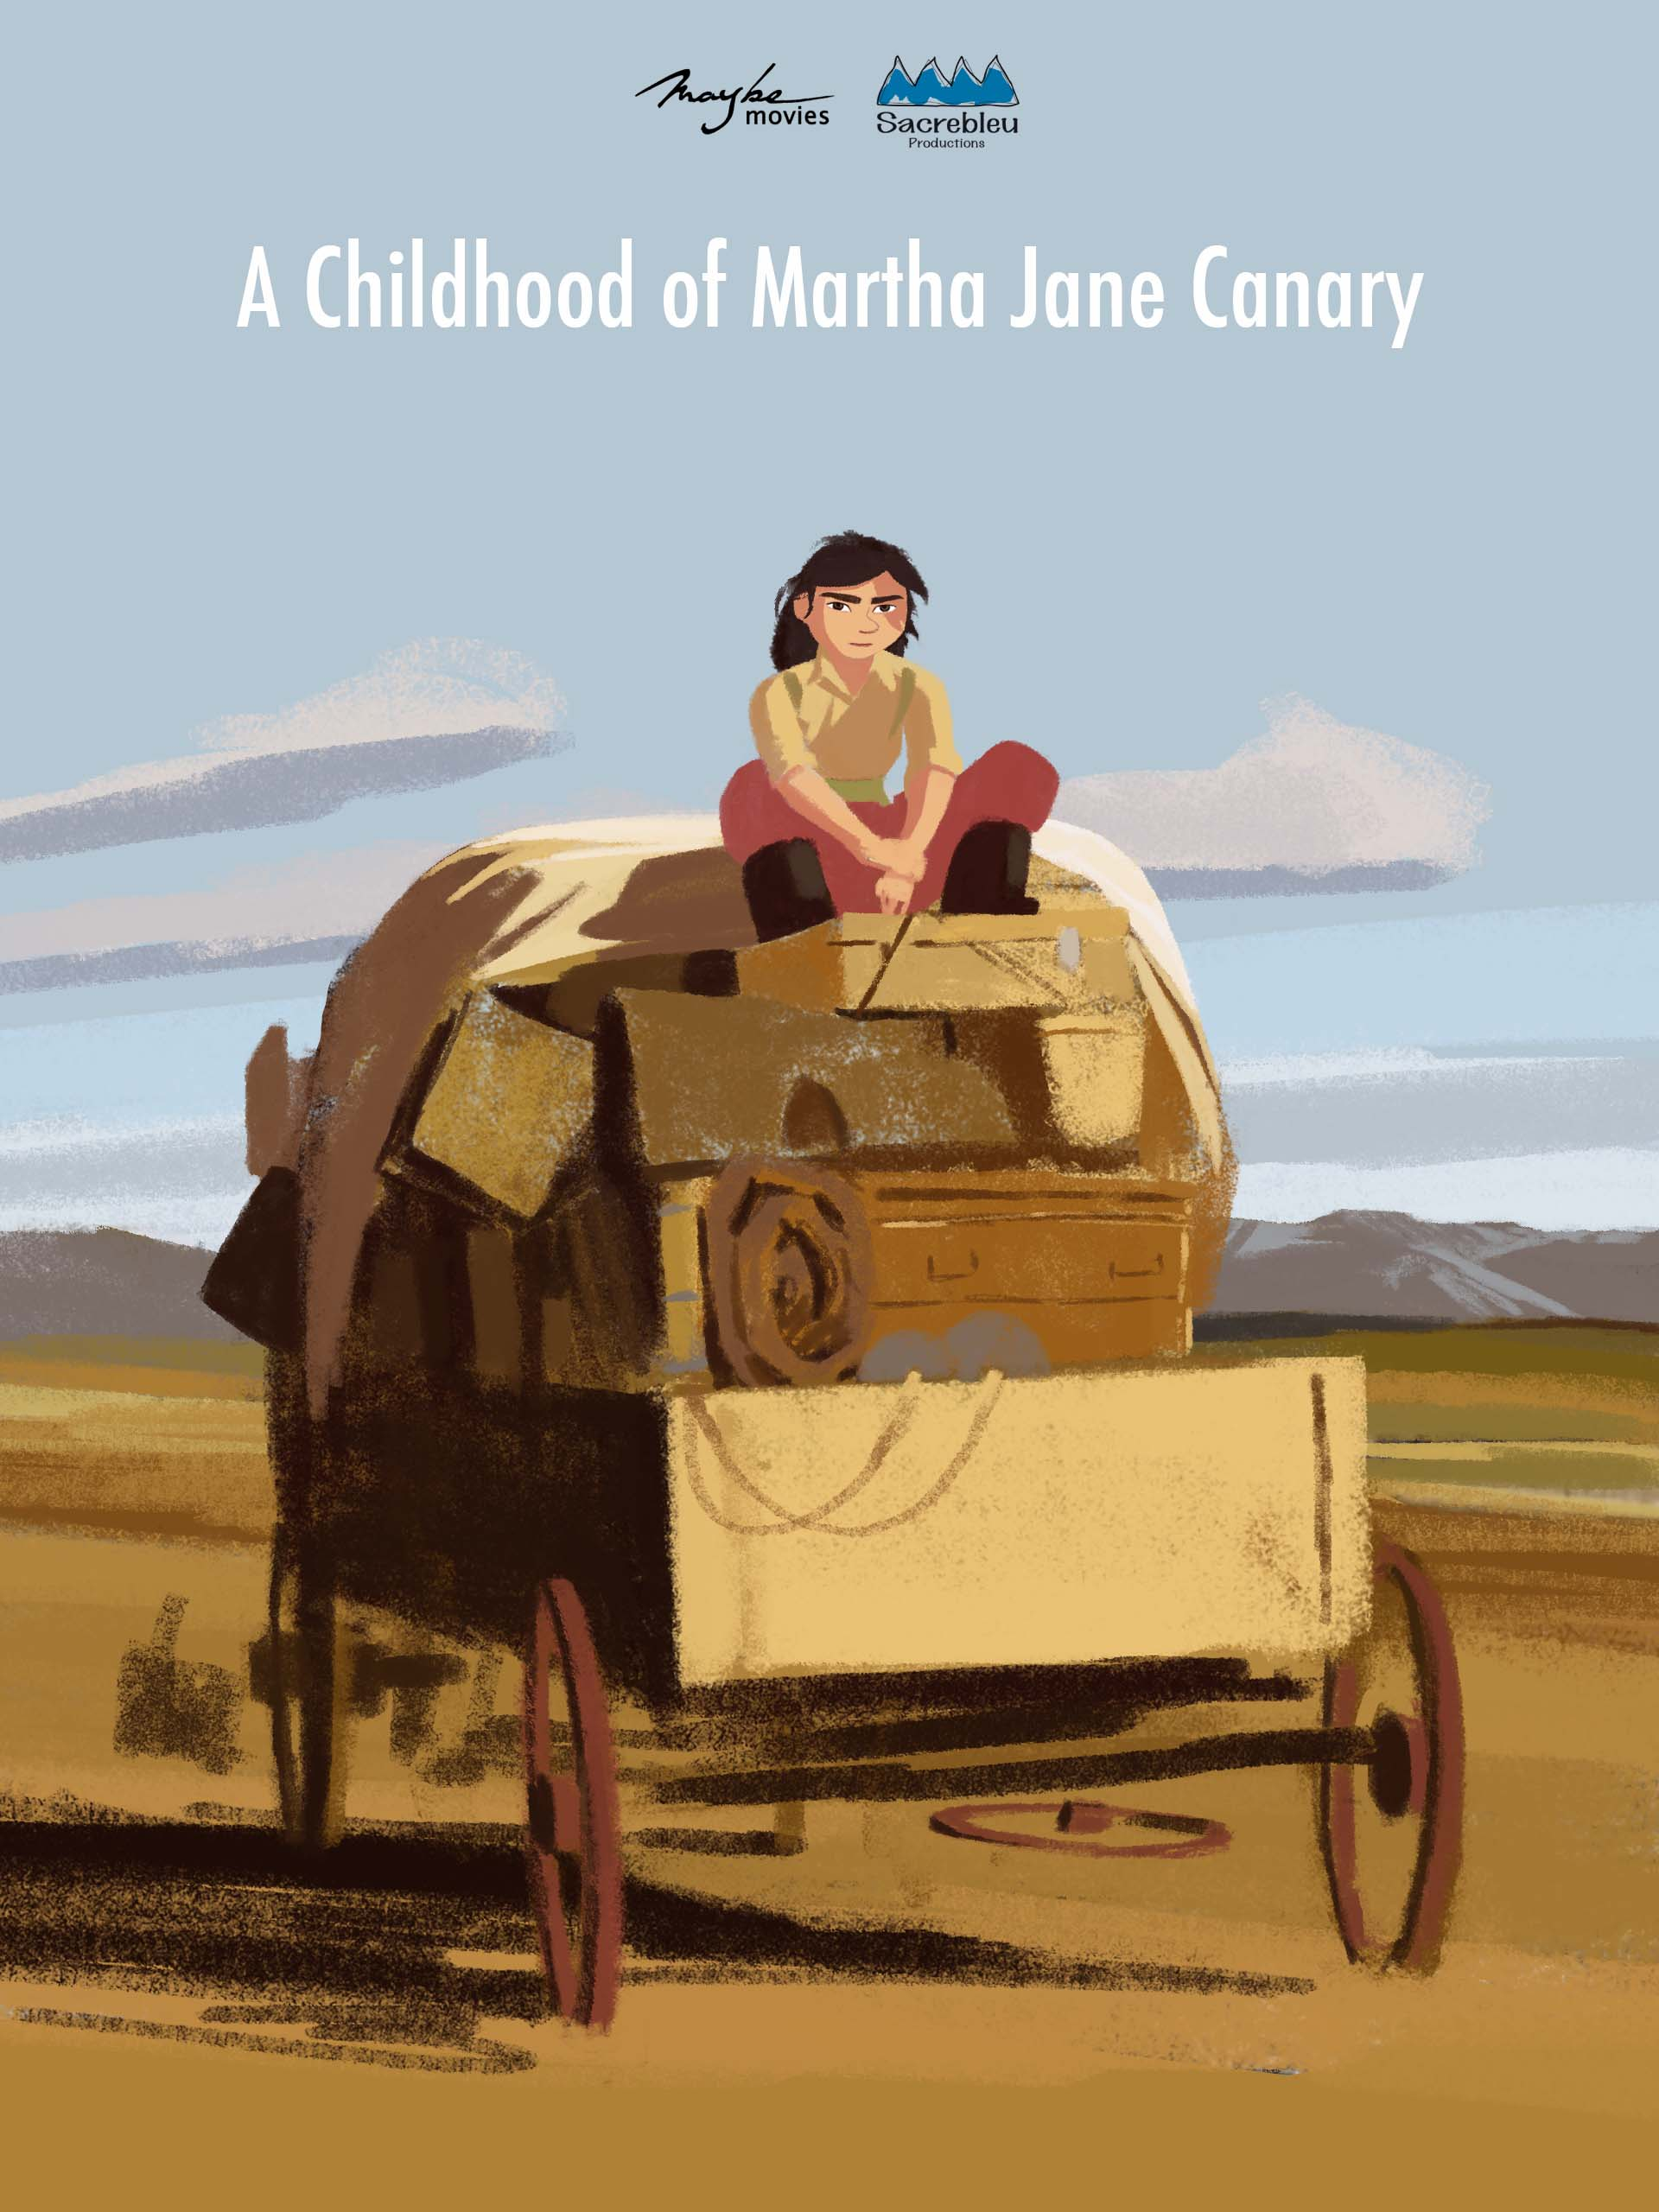 A_Childhood_Of_Martha_Jane_Canary01